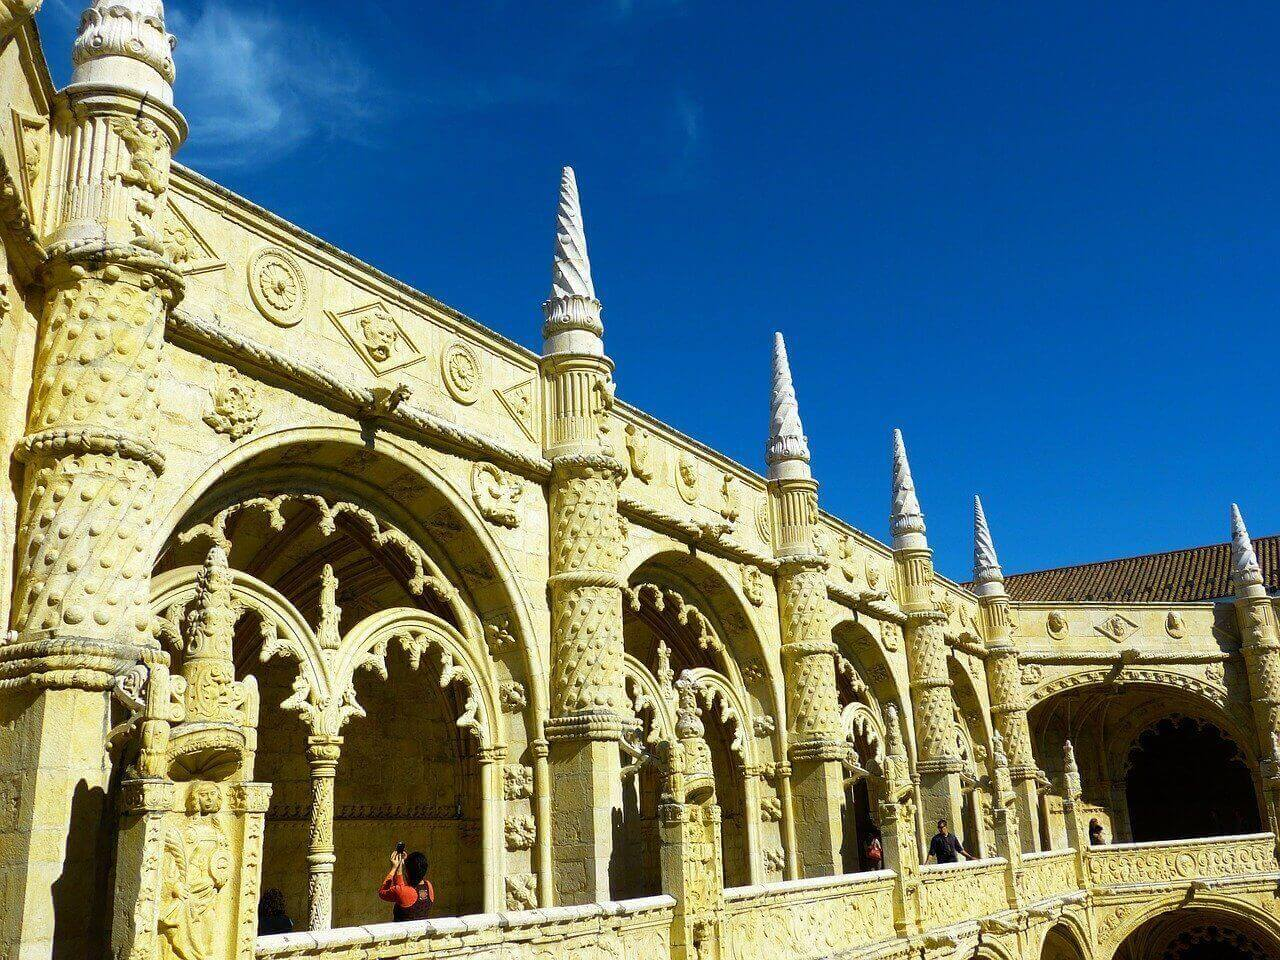 The inside of the Jerónimos Monastery, in Lisbon